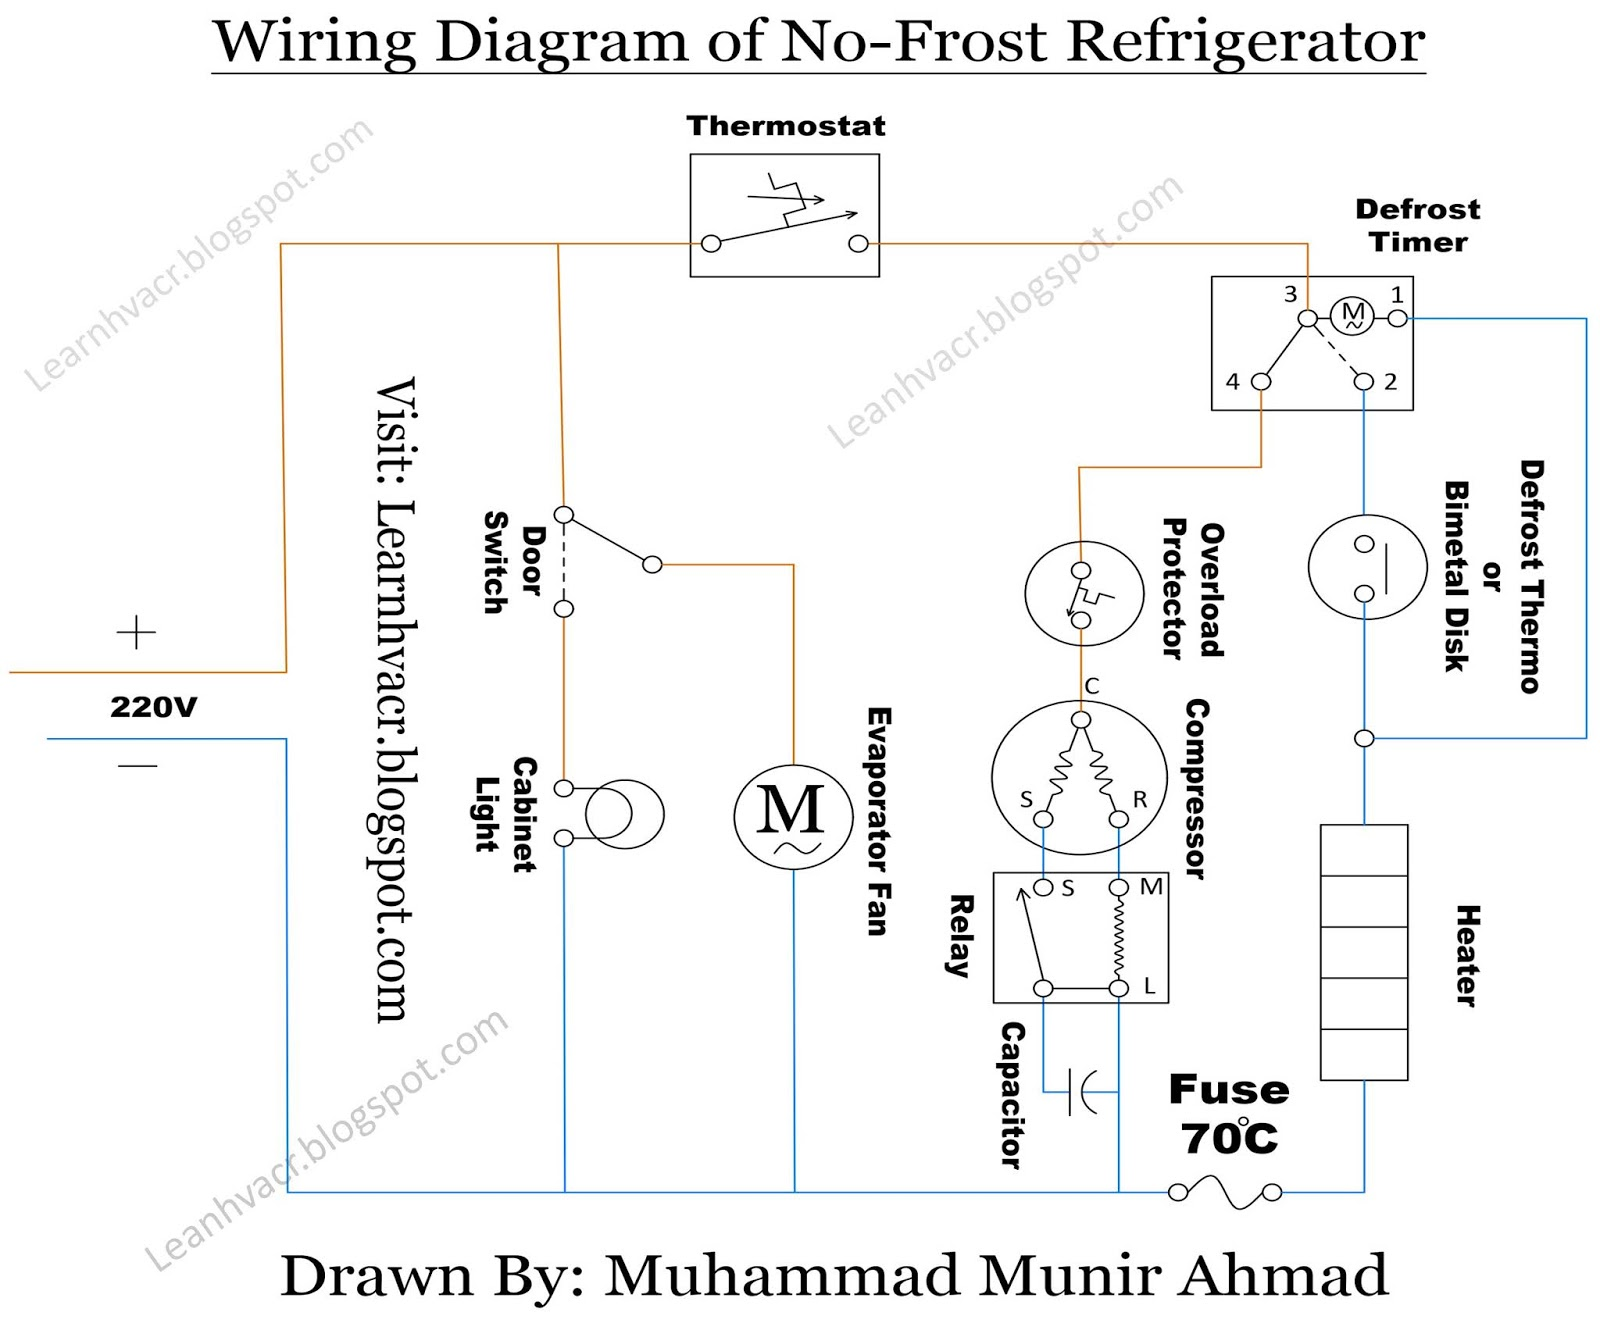 LEARN THE HVAC & REFRIGERATION: No Frost Refrigerator Wiring Diagram | HVACRlearn the hvac & refrigeration - blogger